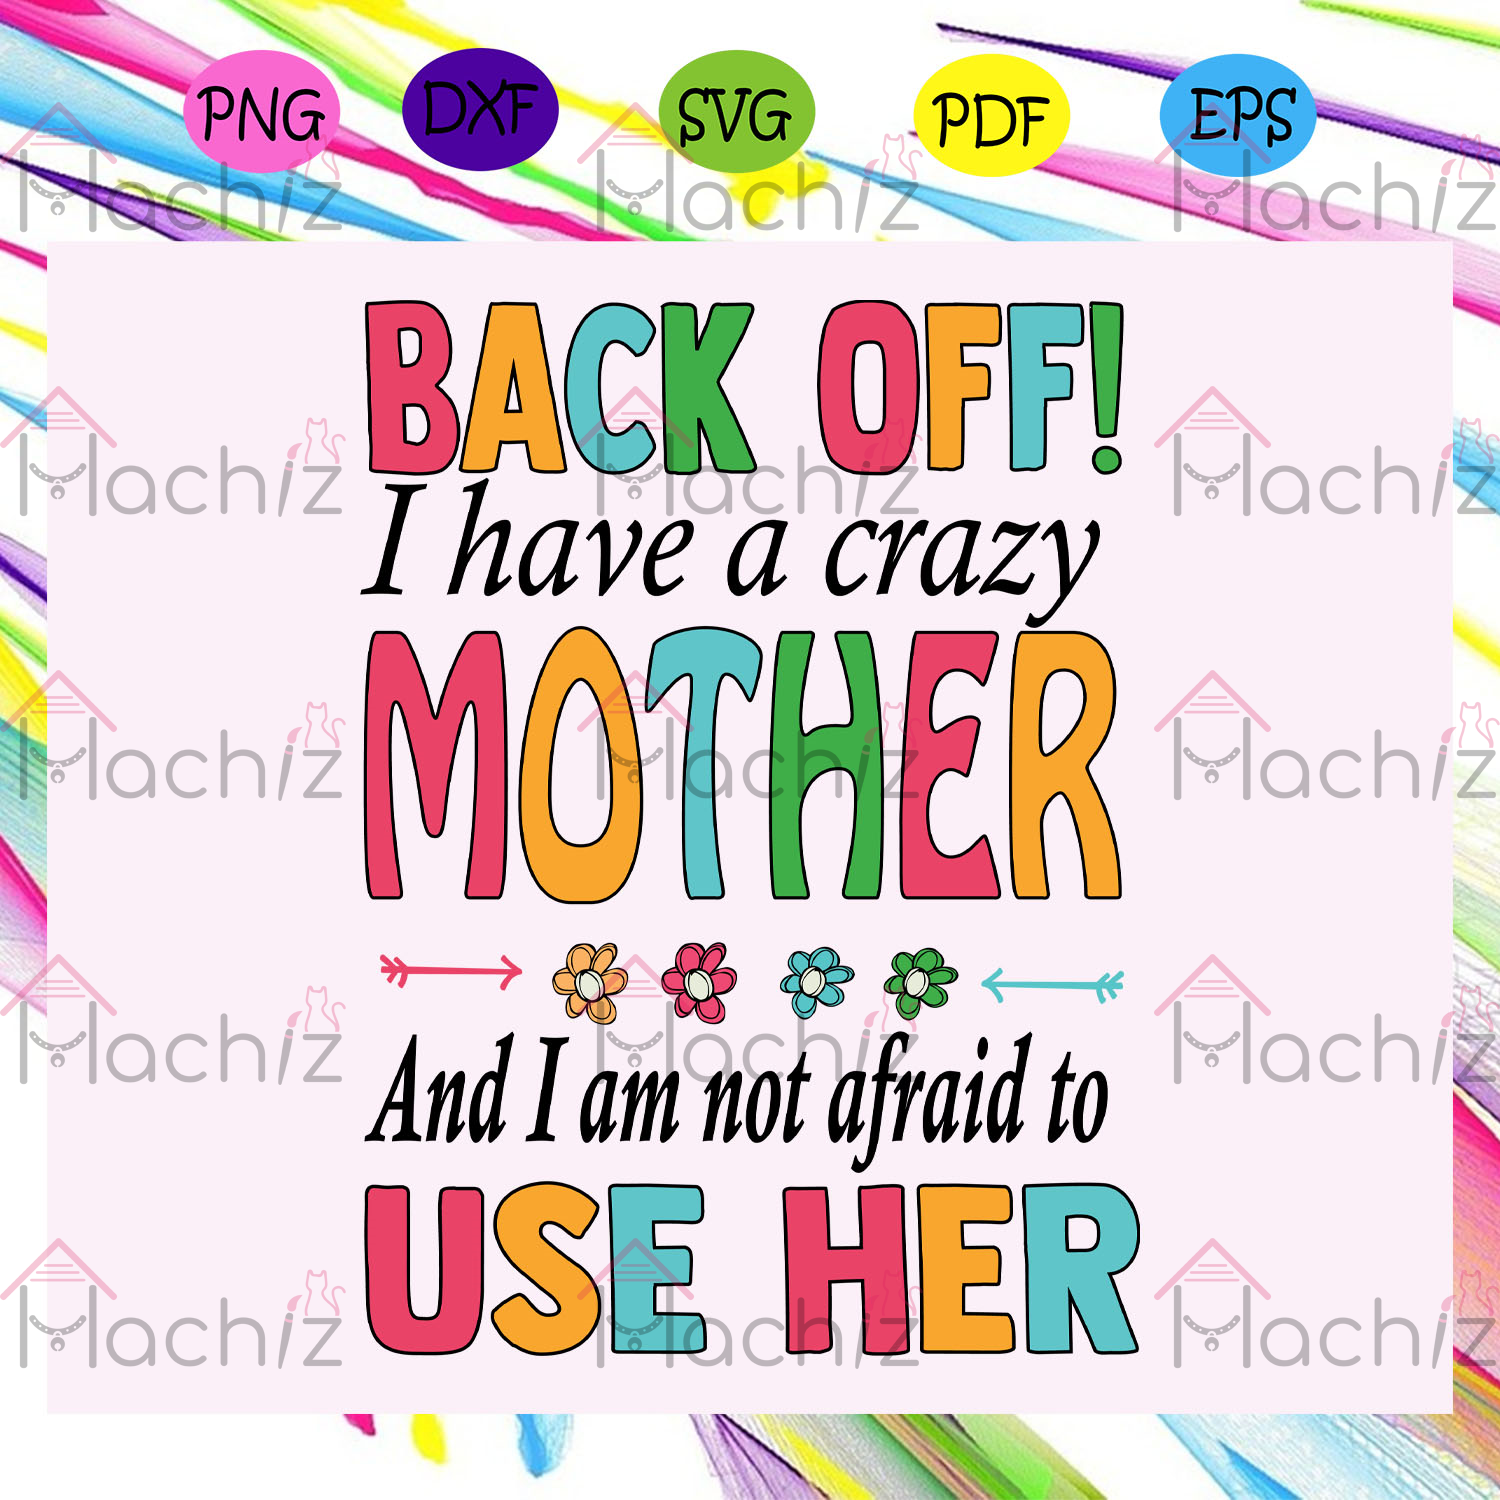 Back off I have a crazy mother mother , Mothers Day Gift,Trendy Mom,trending svg, Files For Silhouette, Files For Cricut, SVG, DXF, EPS, PNG, Instant Download